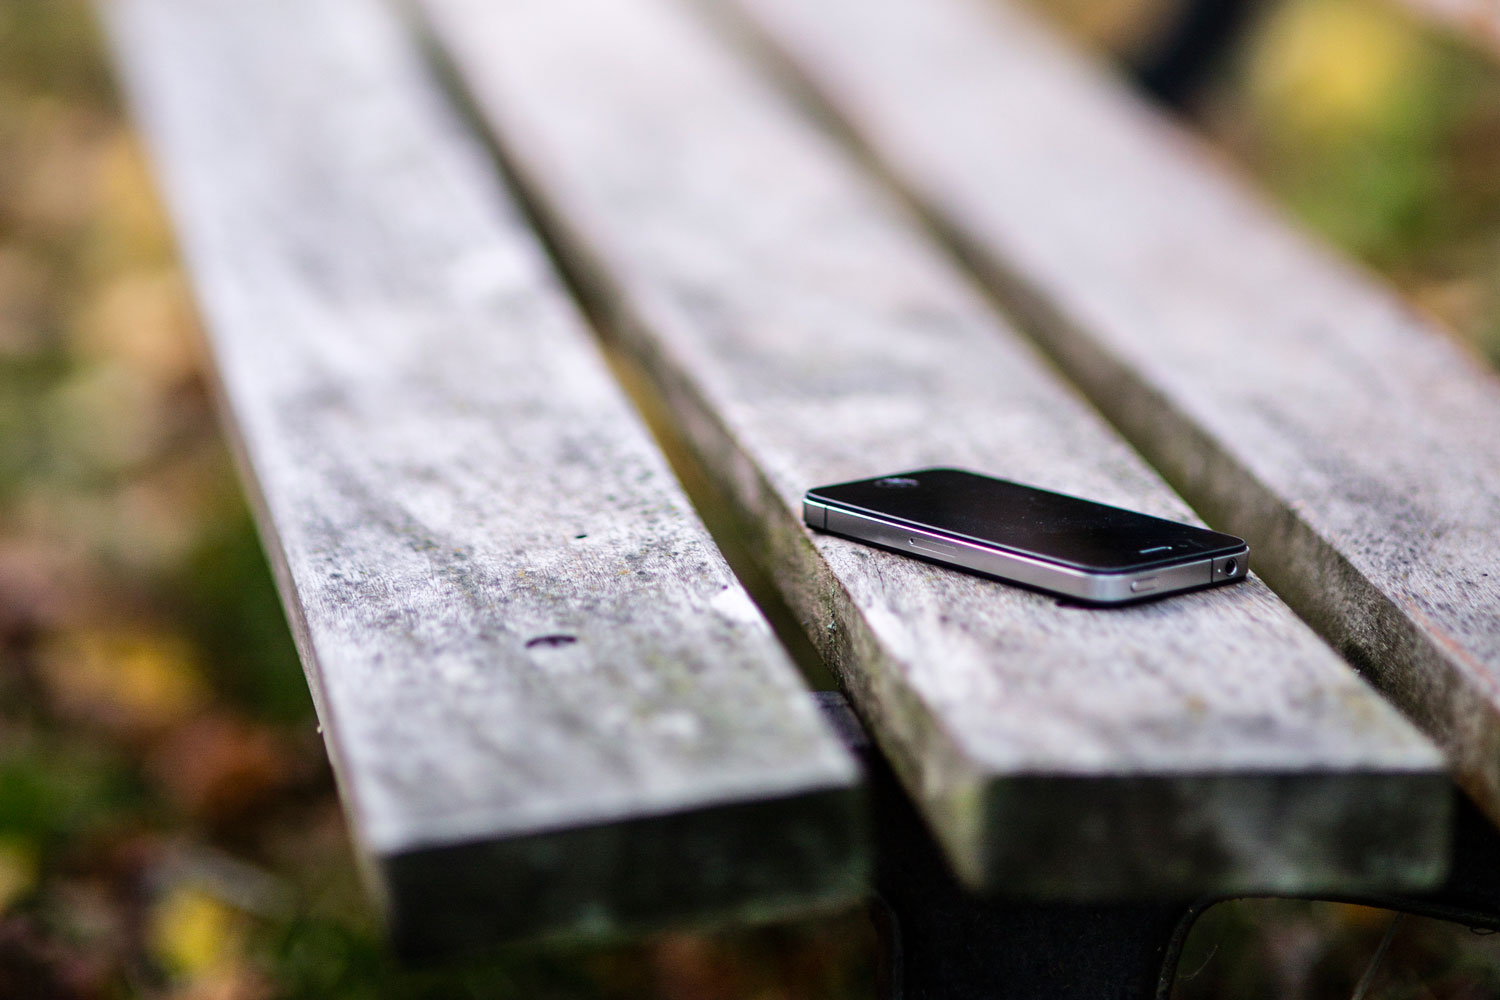 Missing Phone on Bench